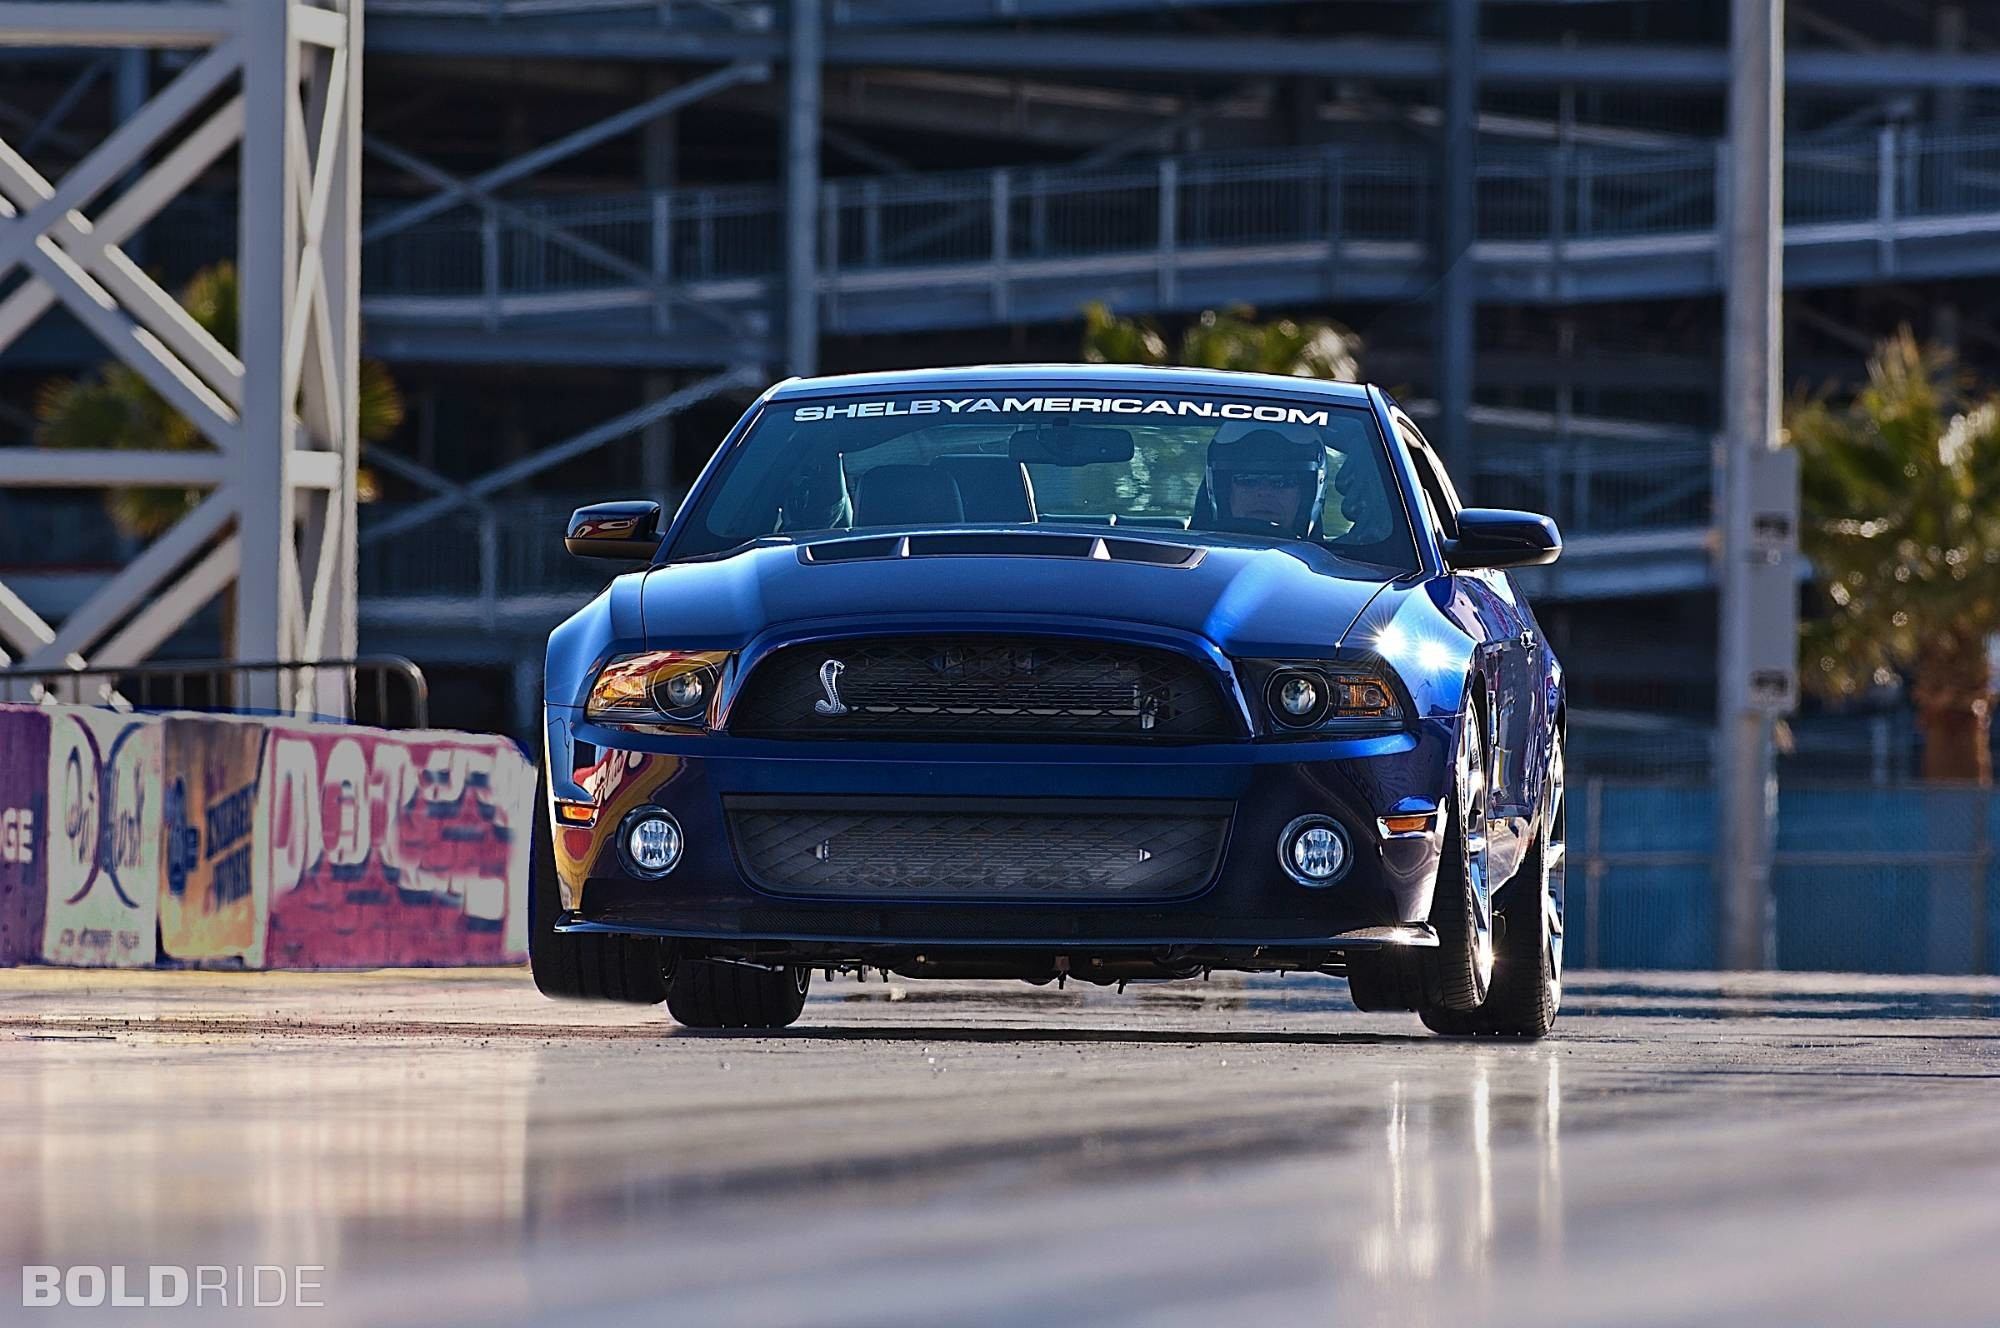 Res: 2000x1328, 2012 Ford Mustang Shelby 1000 drag racing race car hot rod muscle .